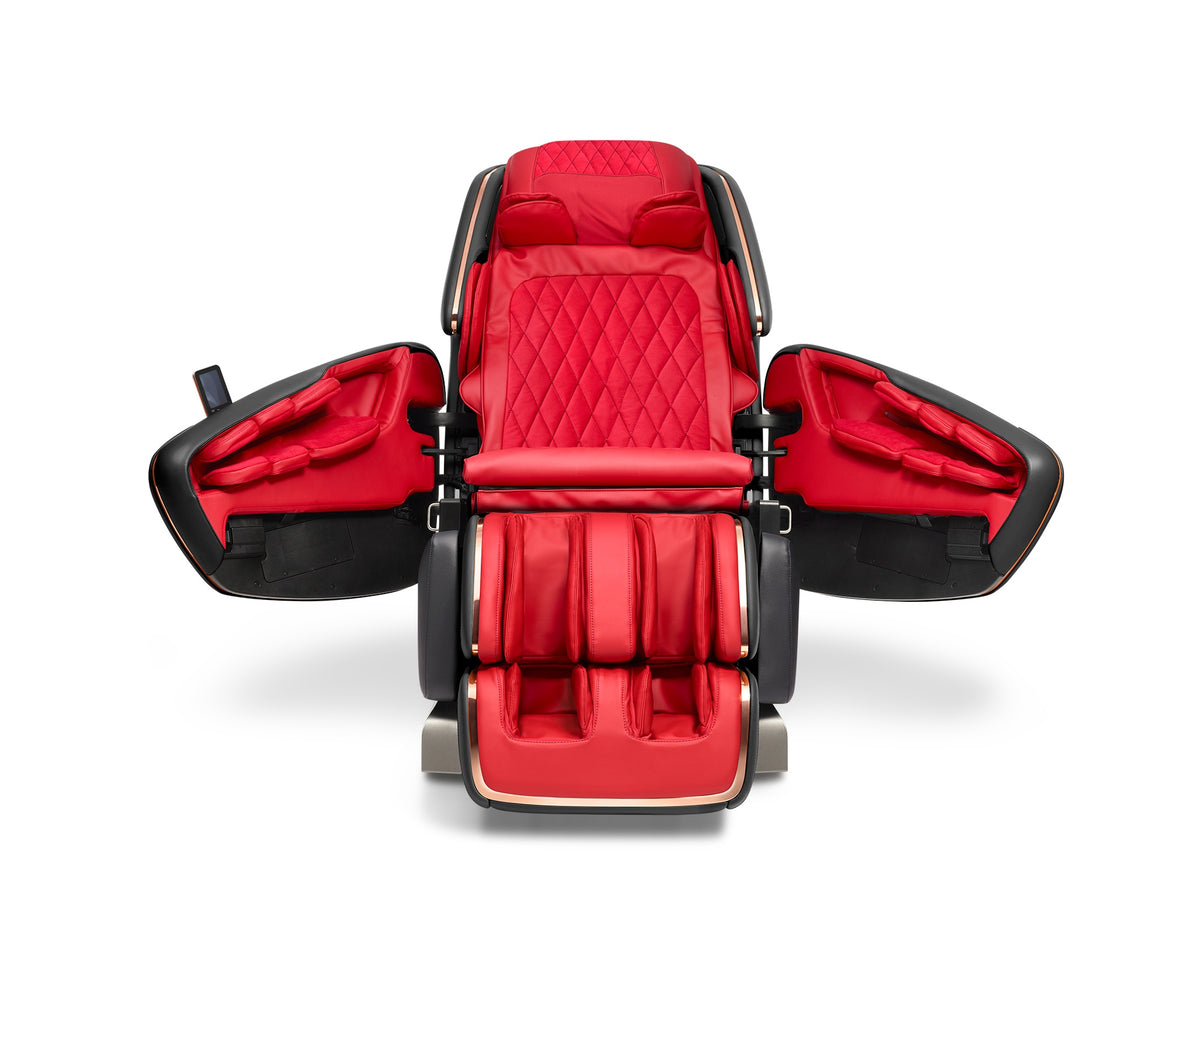 OHCO M.8LE Massage Chair - Wish Rock Relaxation